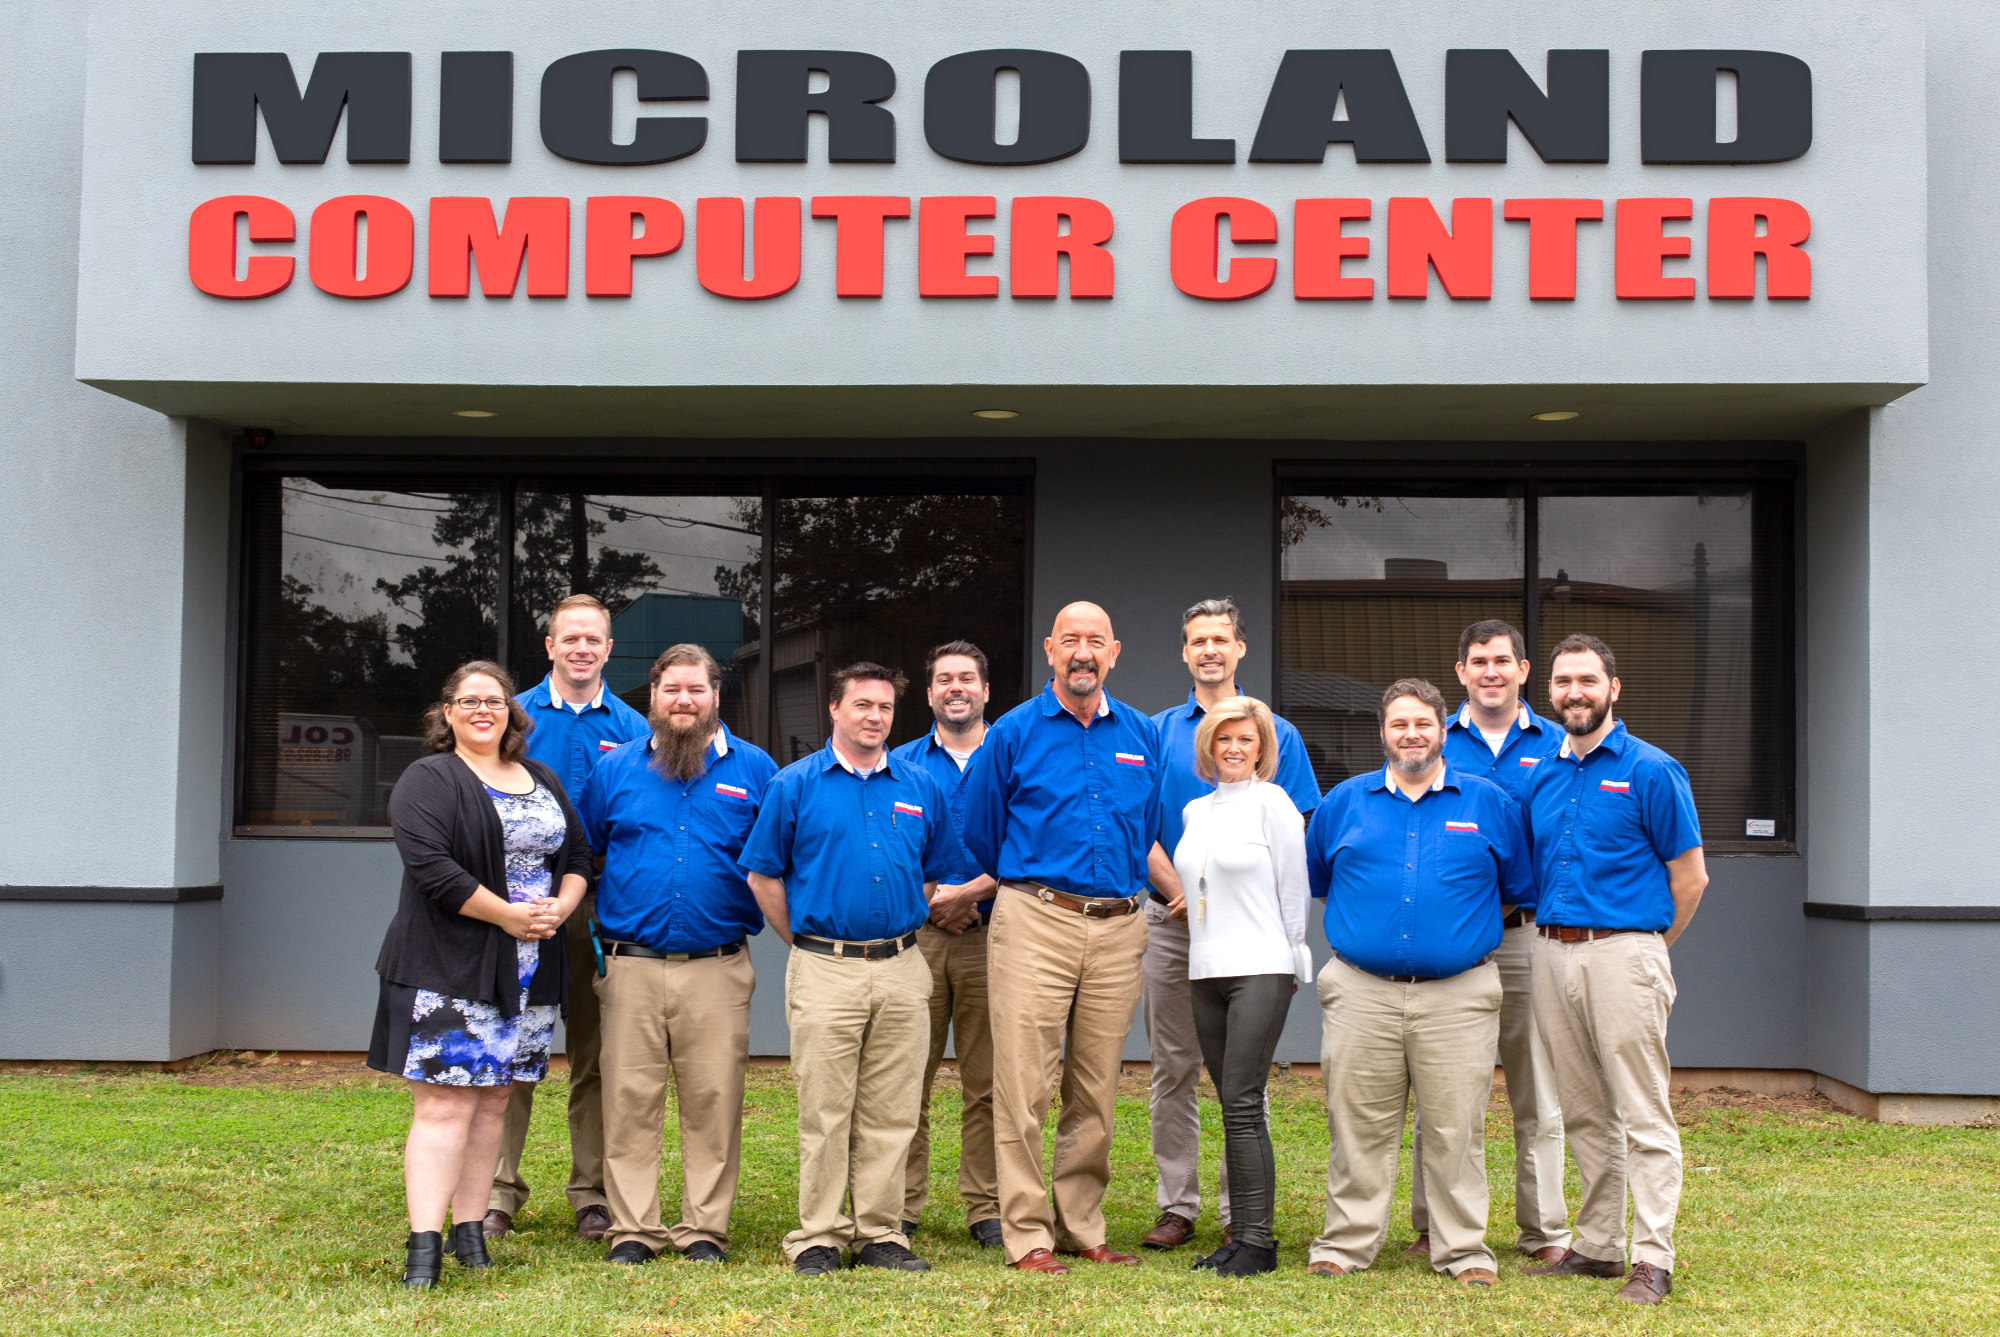 Microland-Computer-Center-IT-Support-Technology-Services-and-Supplies-Louisana-Texas.jpg